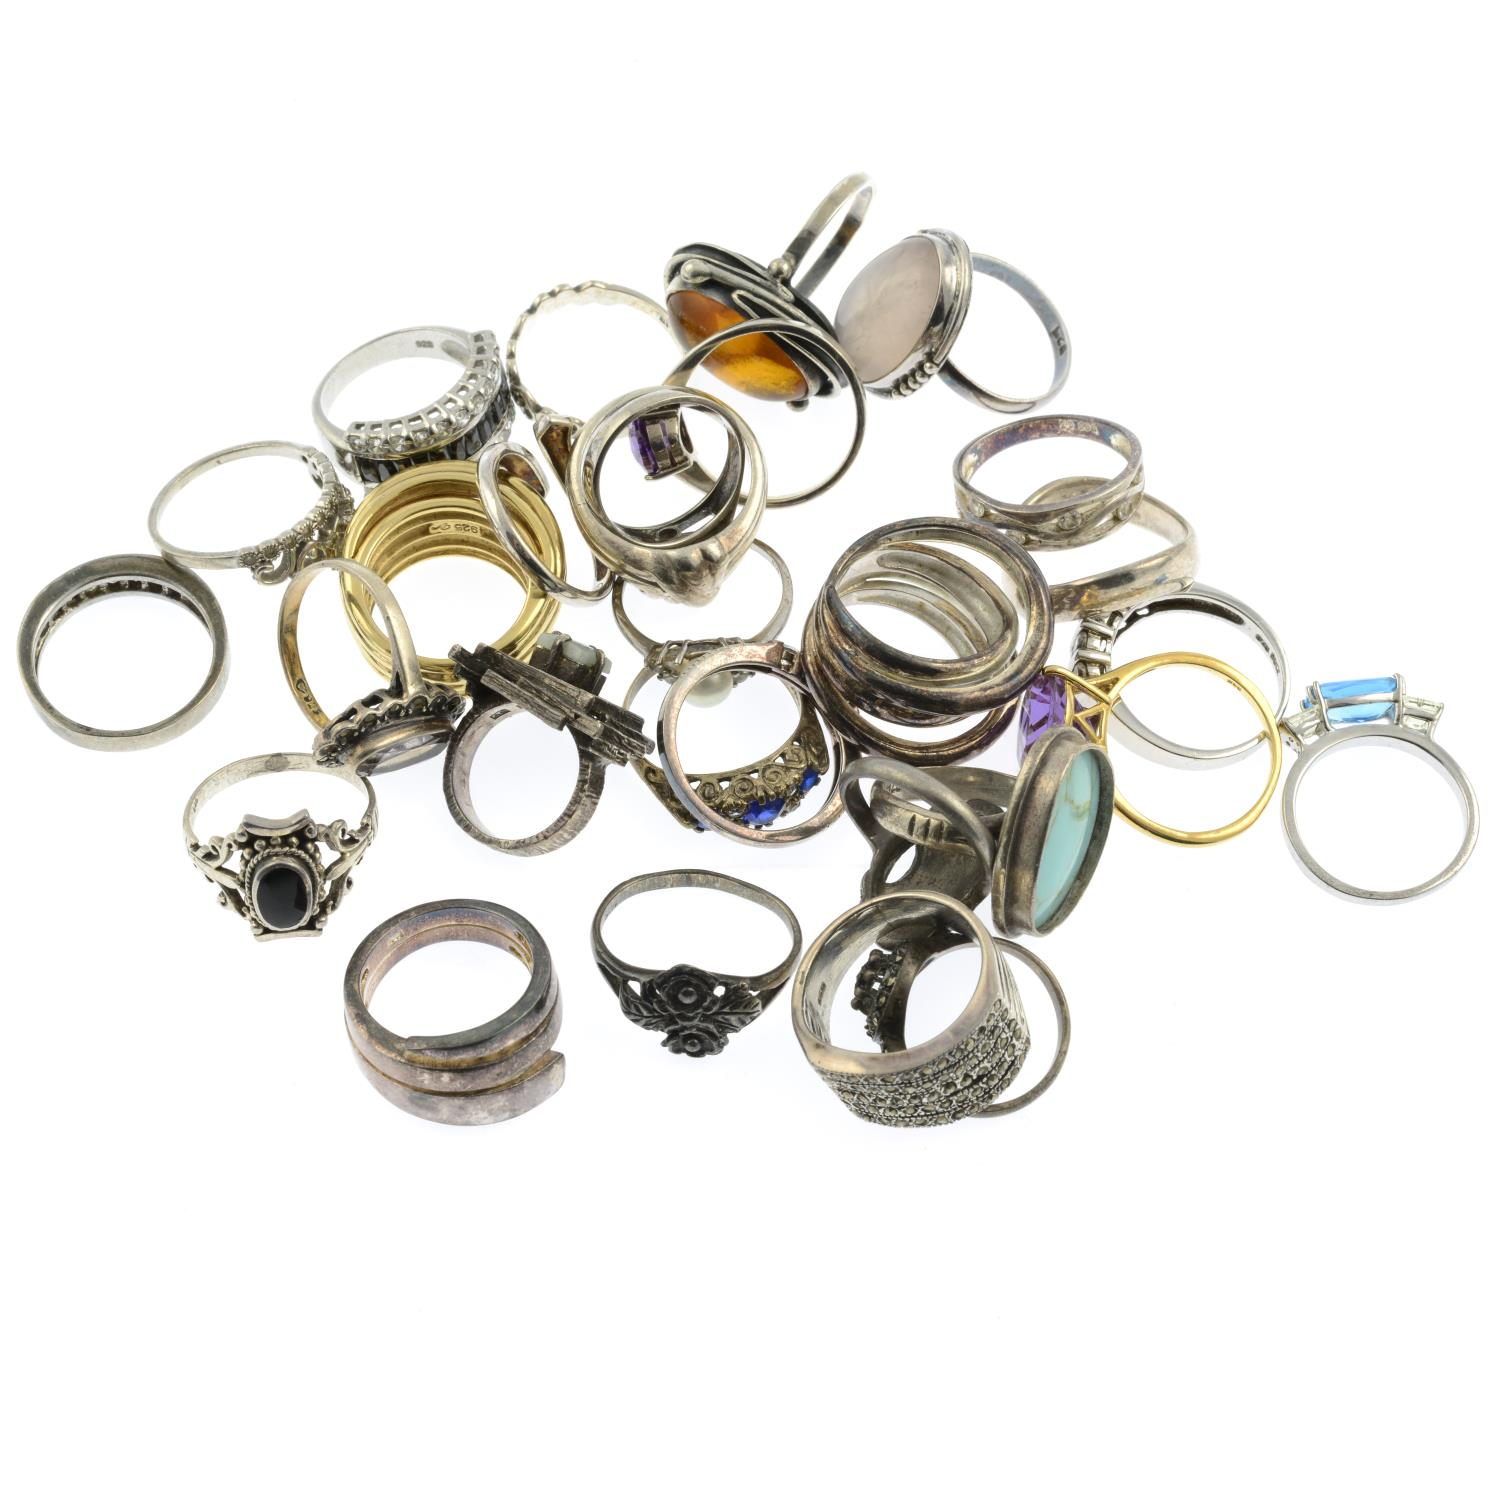 A selection of mainly gem-set rings, to include a silver amber ring. - Image 2 of 2